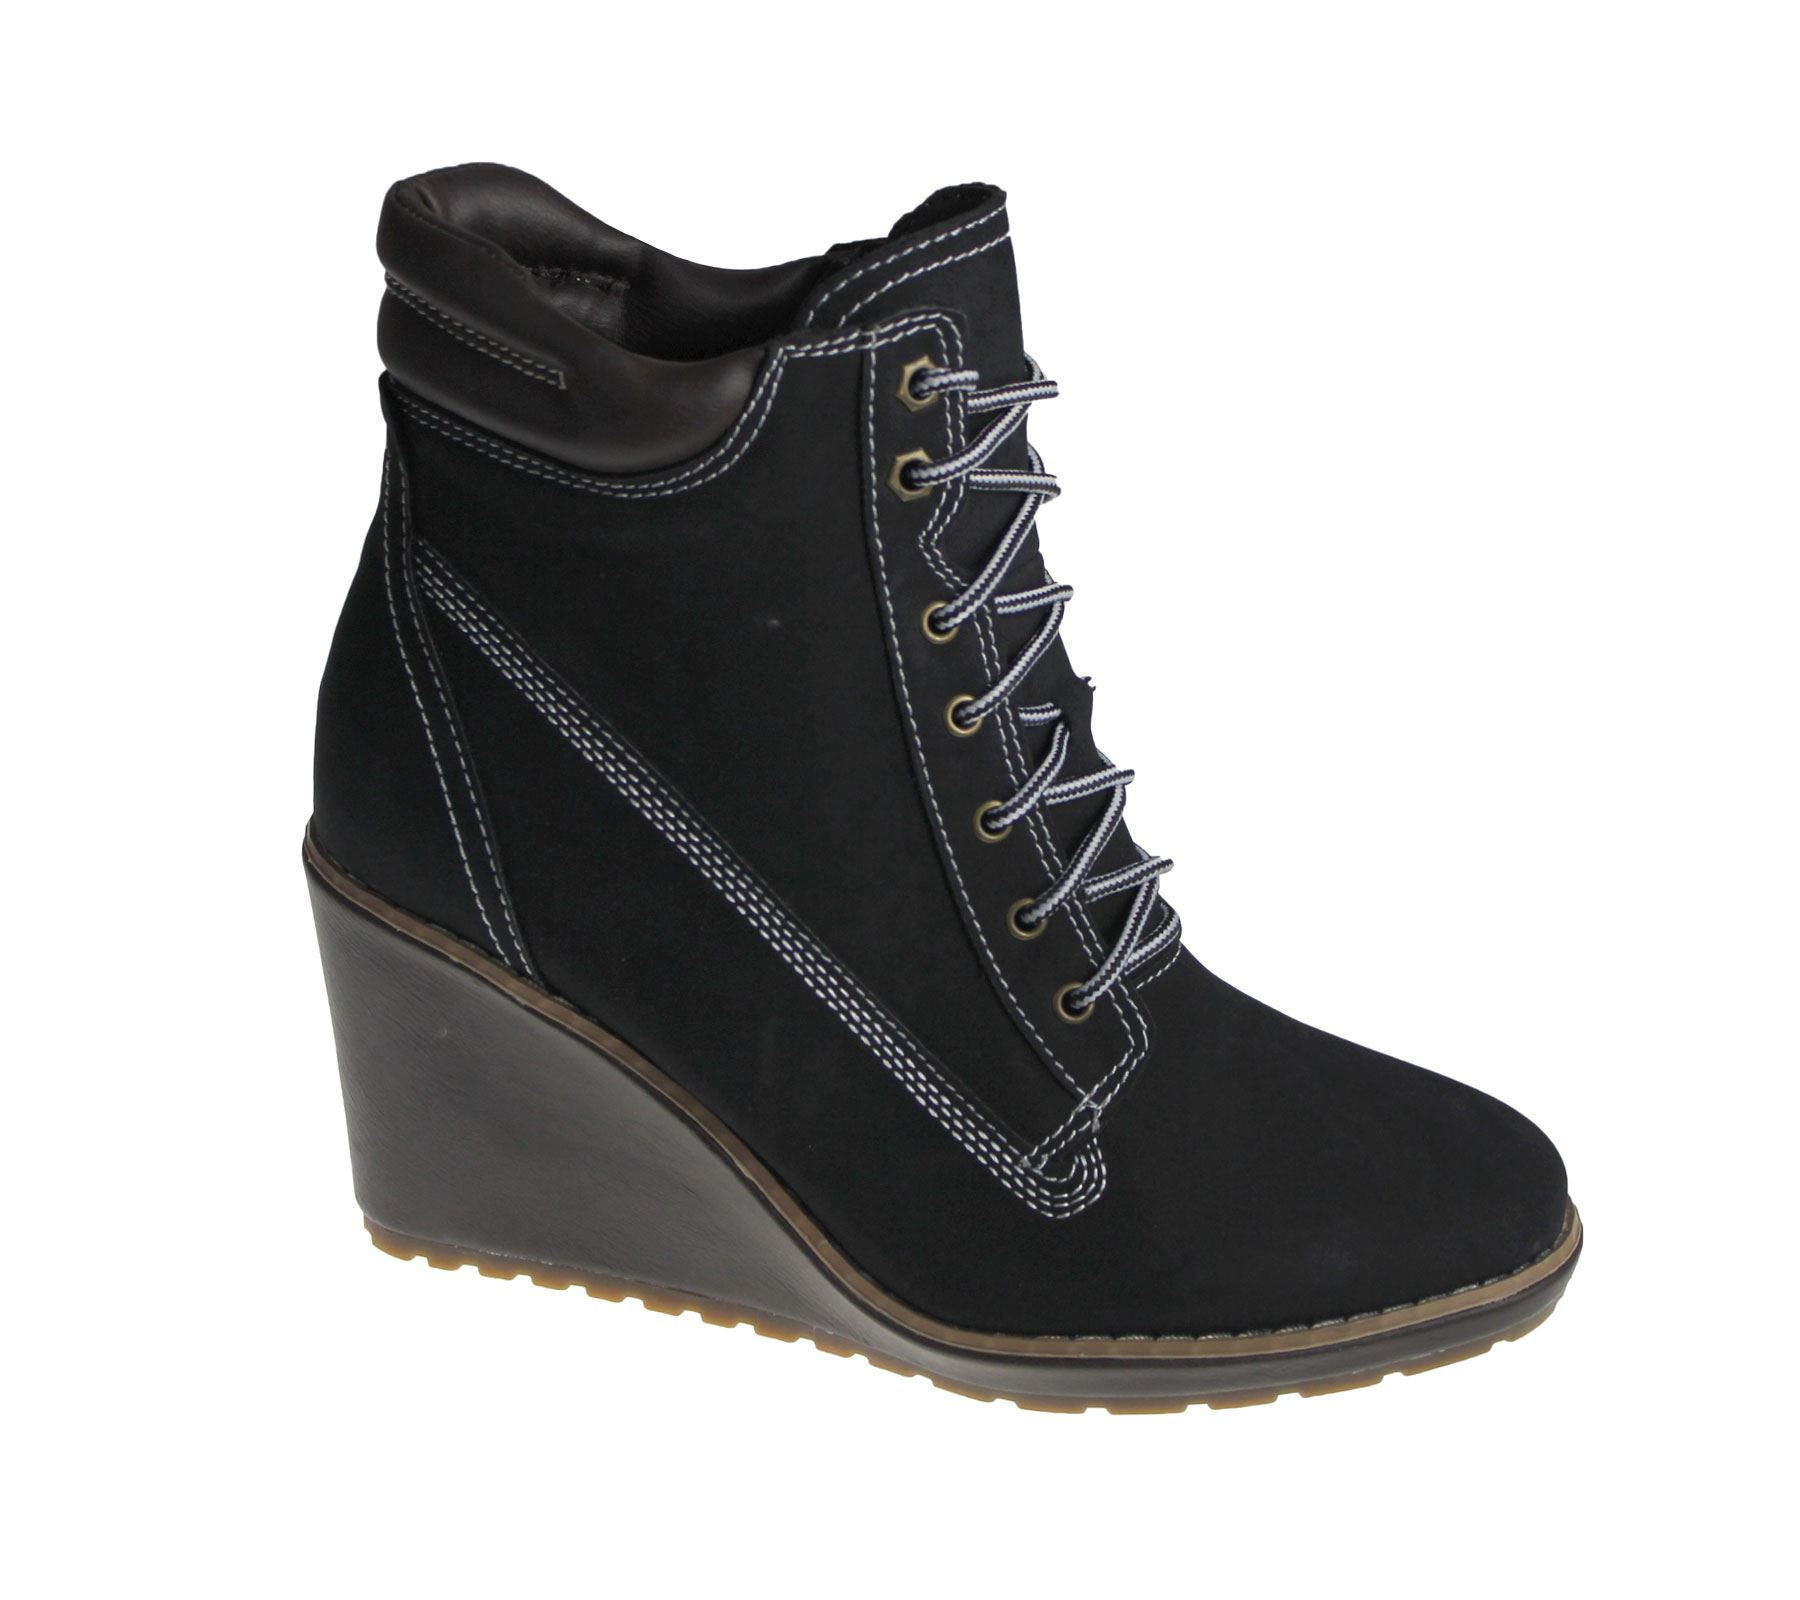 c665eb3391a Style  High Top Boots Heel  Wedge Fastening  Lace Up Sole  Rubber Material   Synthetic Smart and stylish